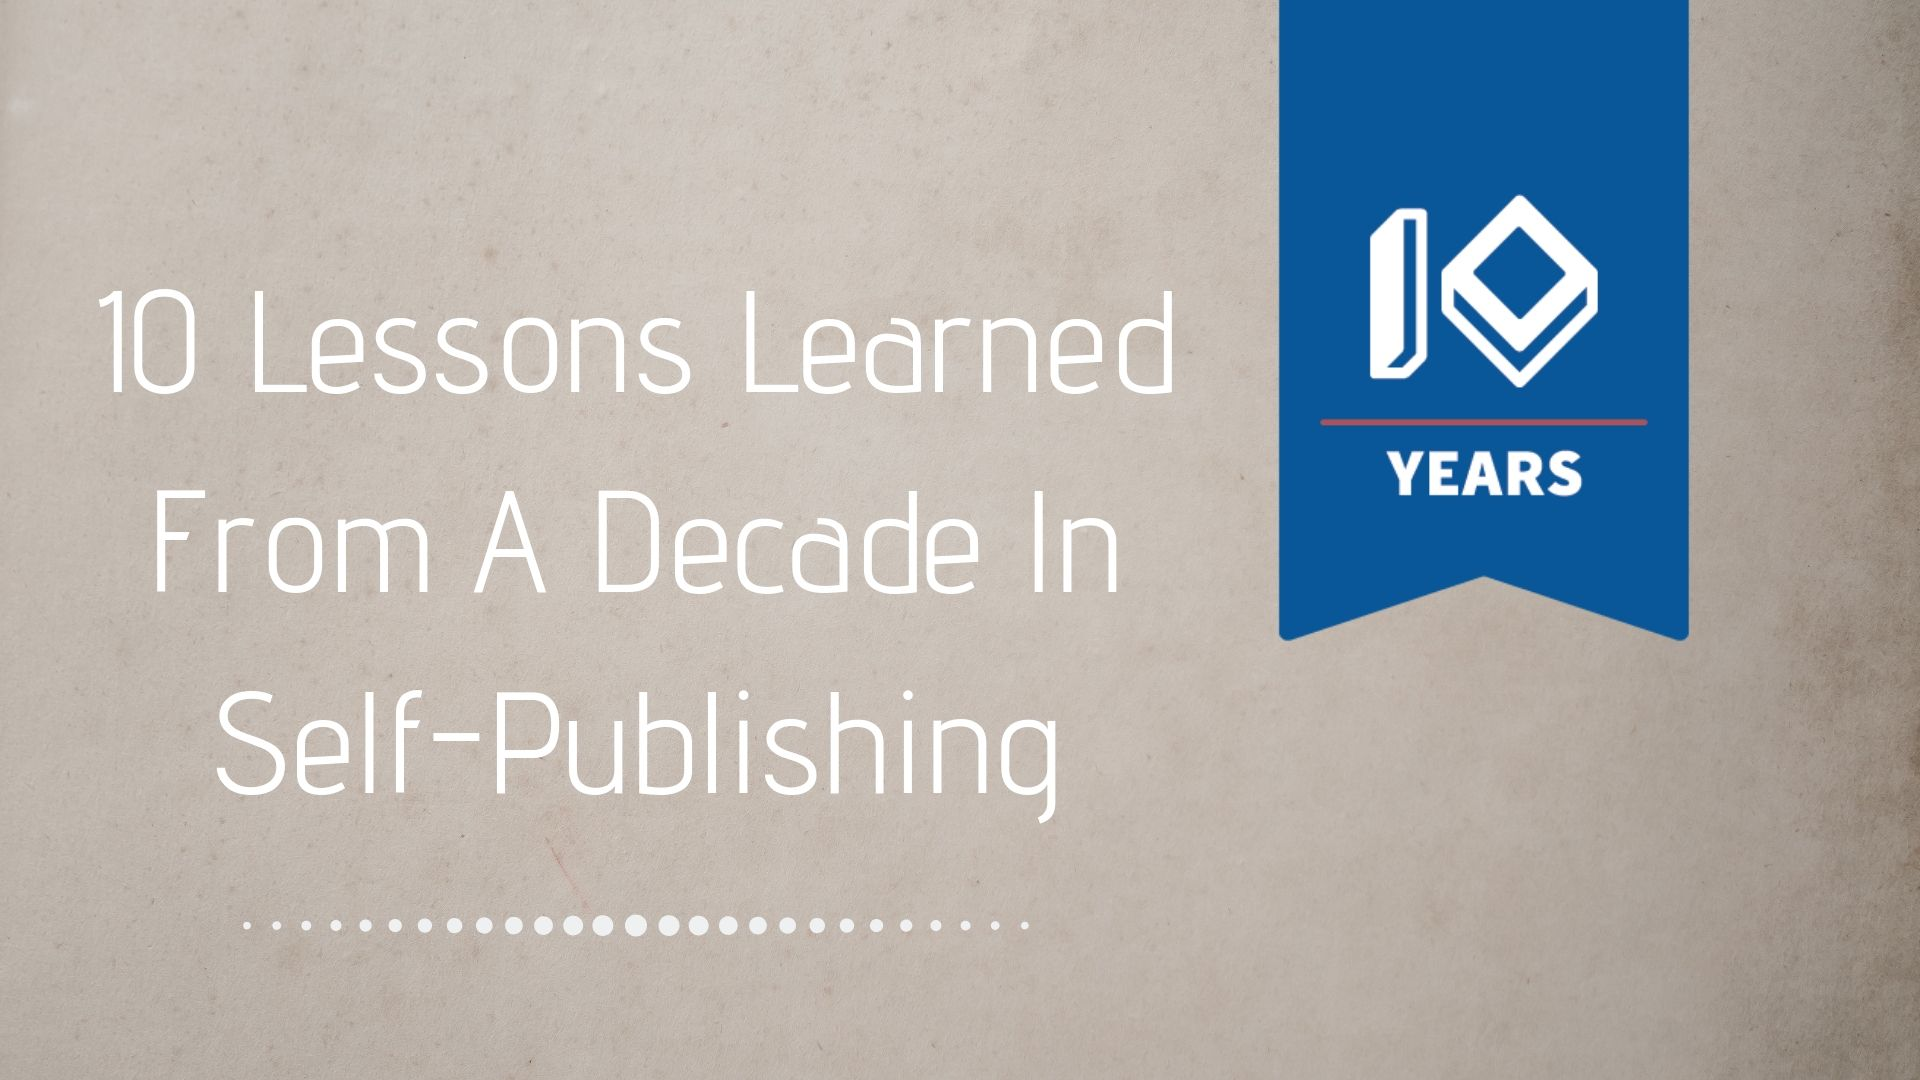 10-lessons-learned-from-a-decade-in-self-publishing.jpg